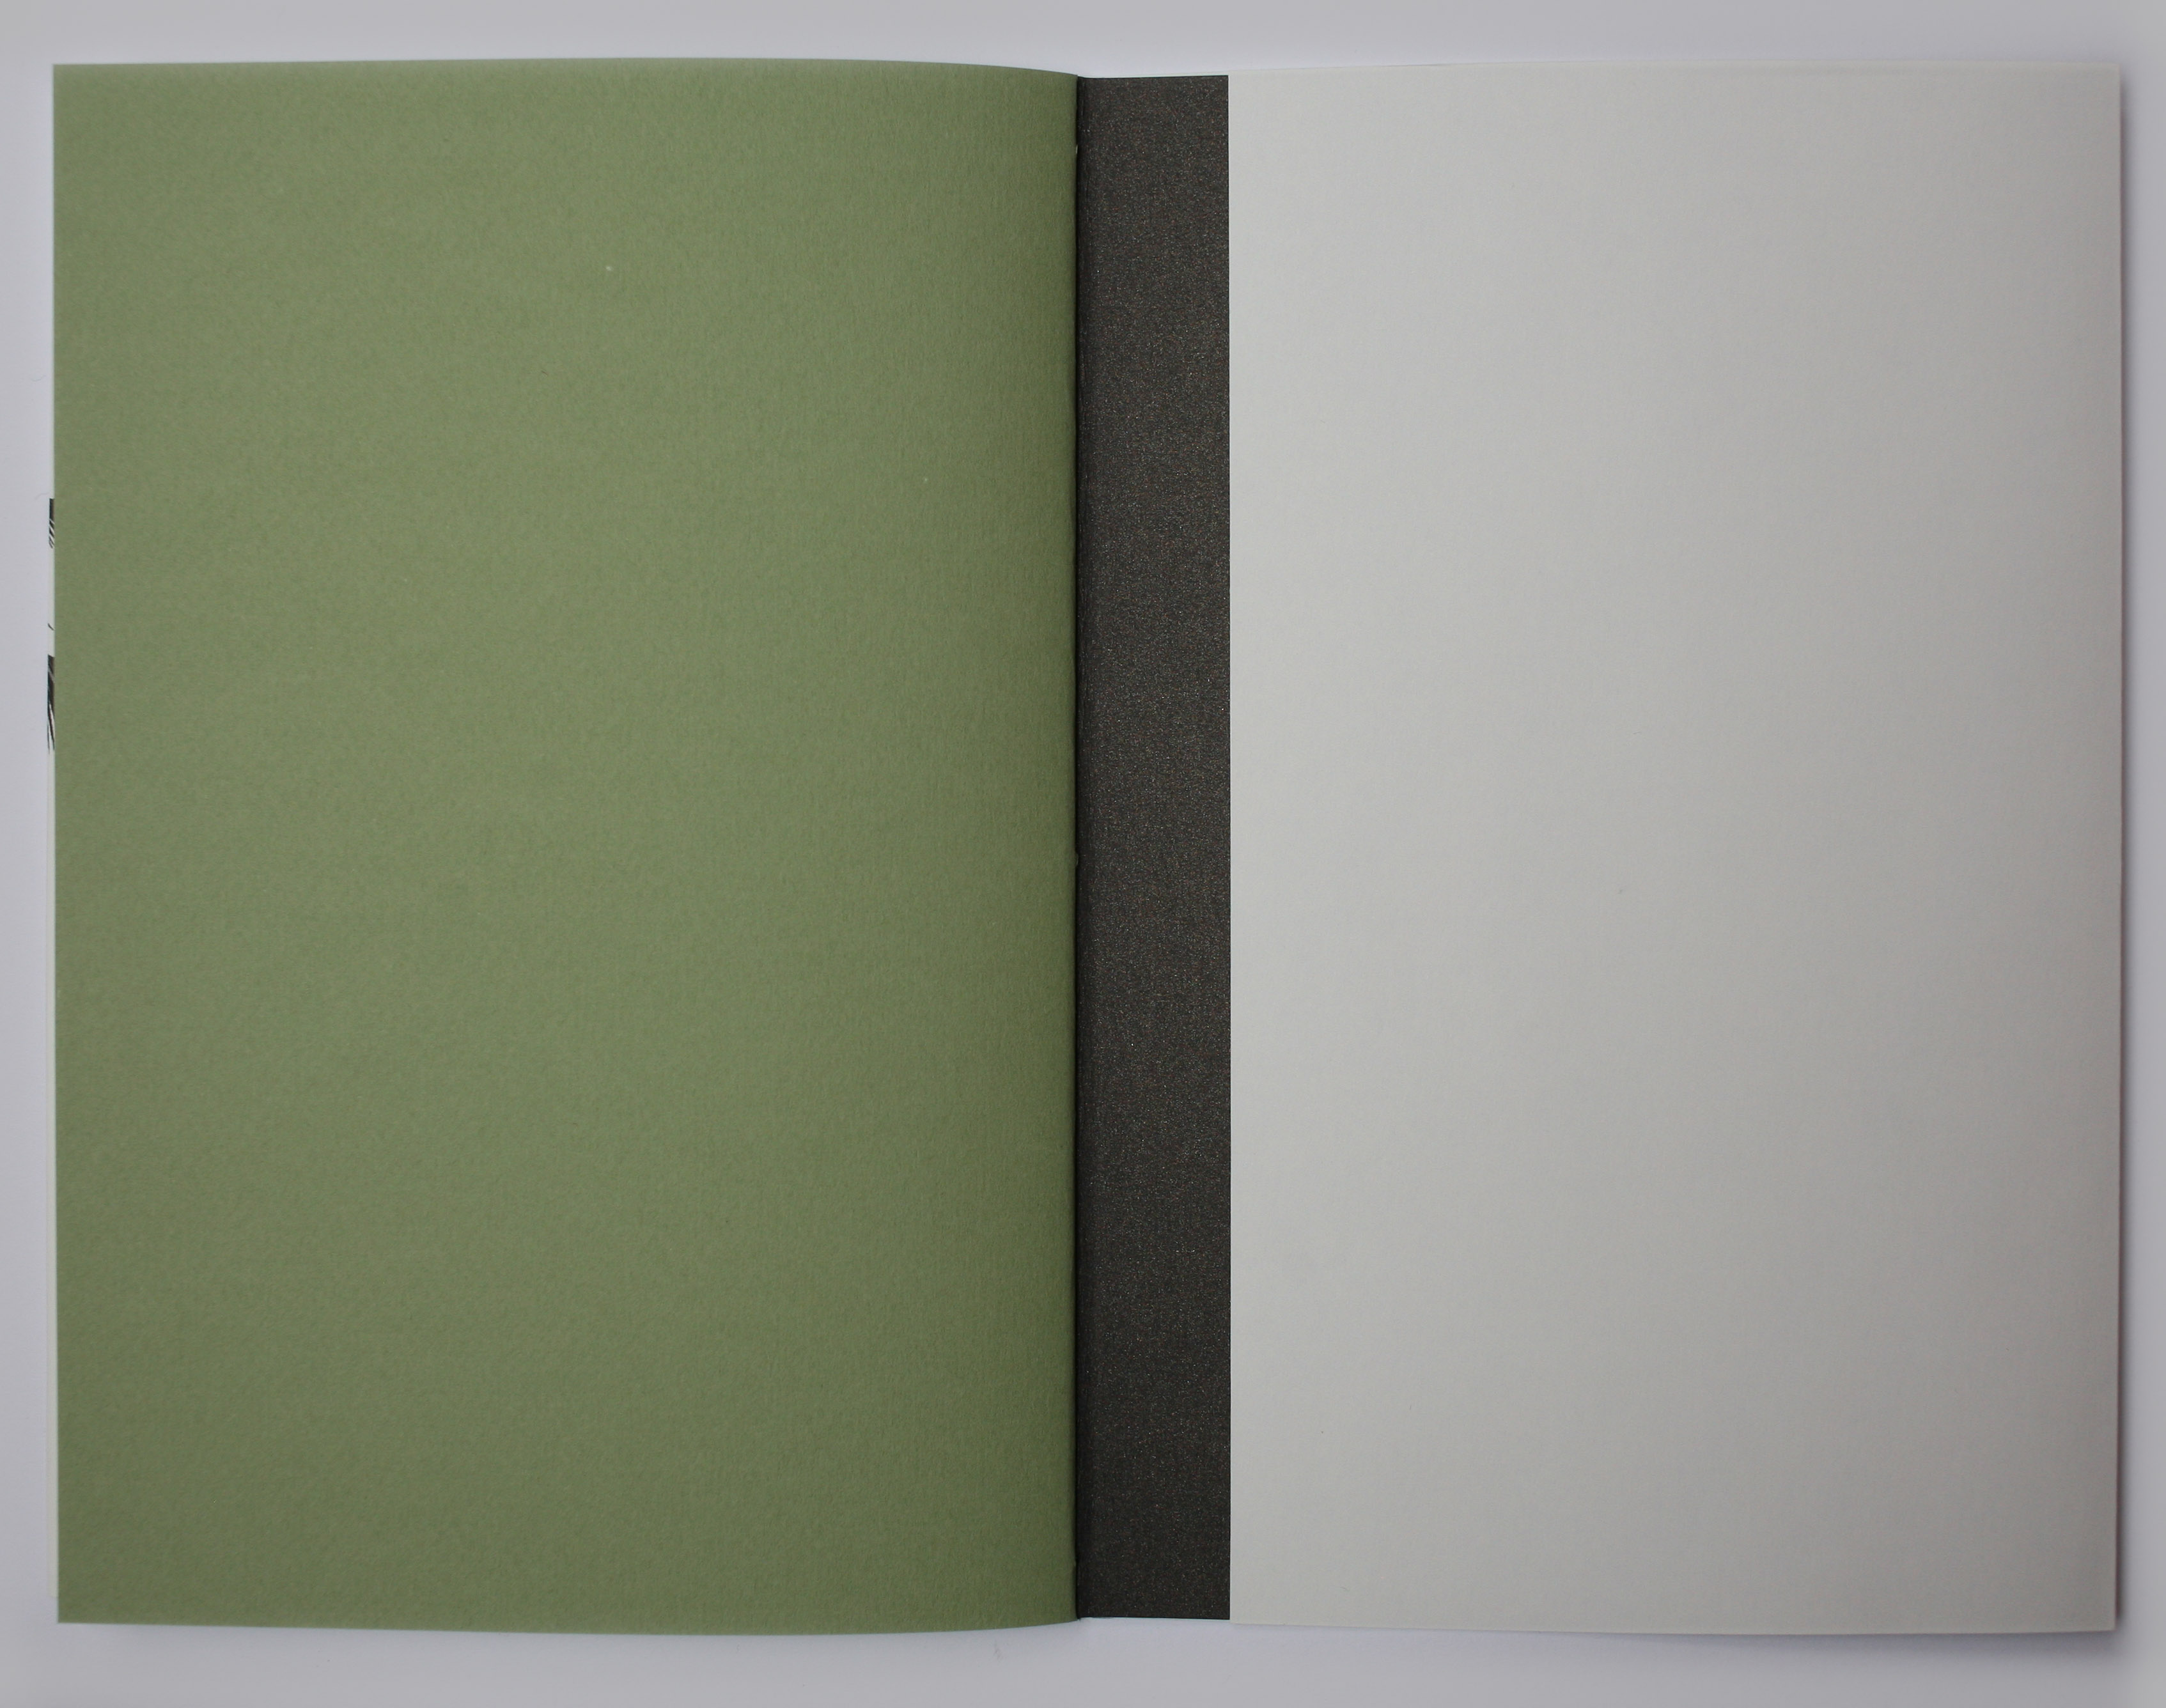 Book showing end paper and cover